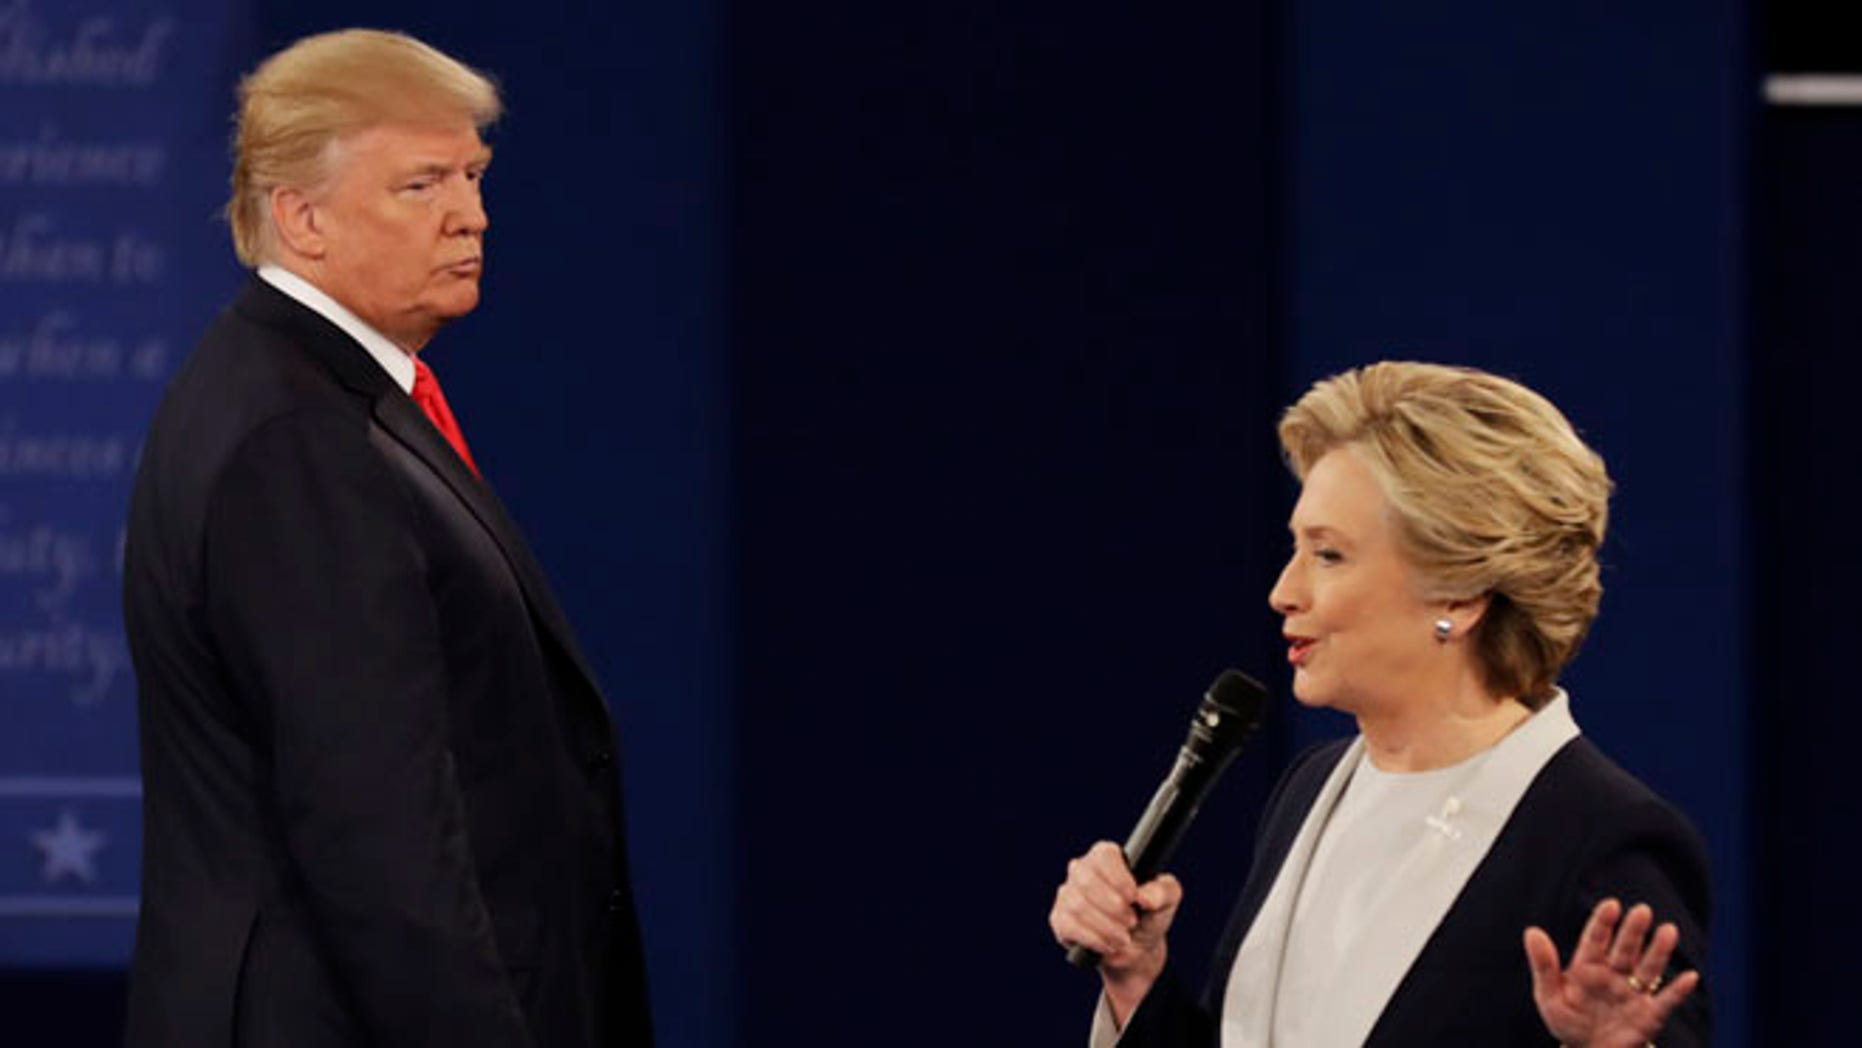 Republican presidential nominee Donald Trump listens to Democratic presidential nominee Hillary Clinton during the second presidential debate at Washington University in St. Louis, Sunday, Oct. 9, 2016. (AP Photo/Patrick Semansky)